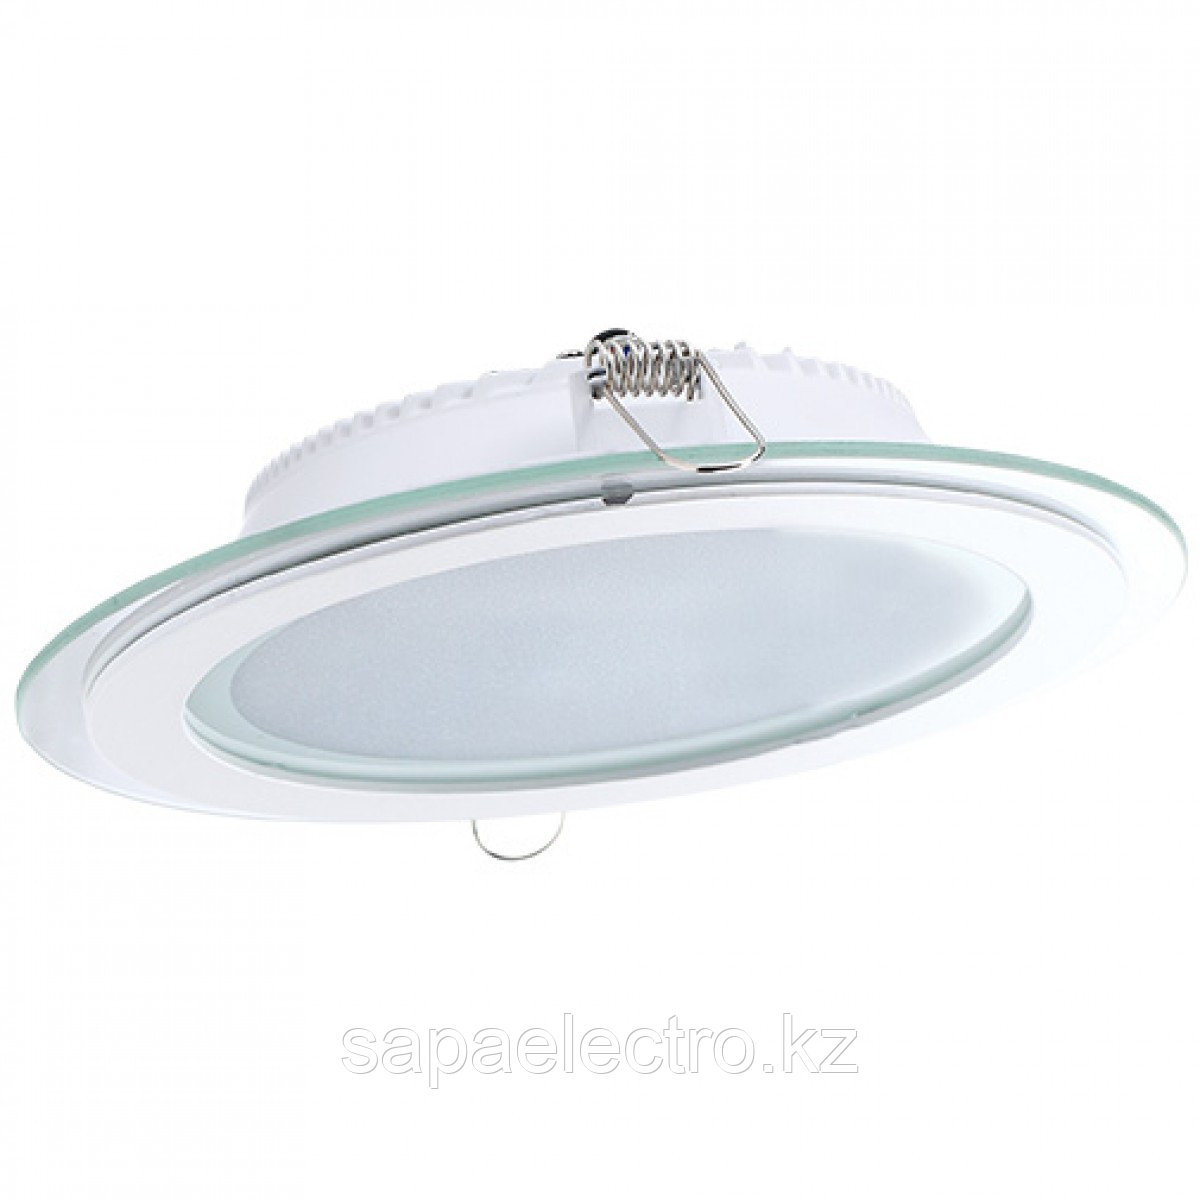 Свет-к DL LED GLASS ROUND PANEL 18W 3000K (TS)20шт,